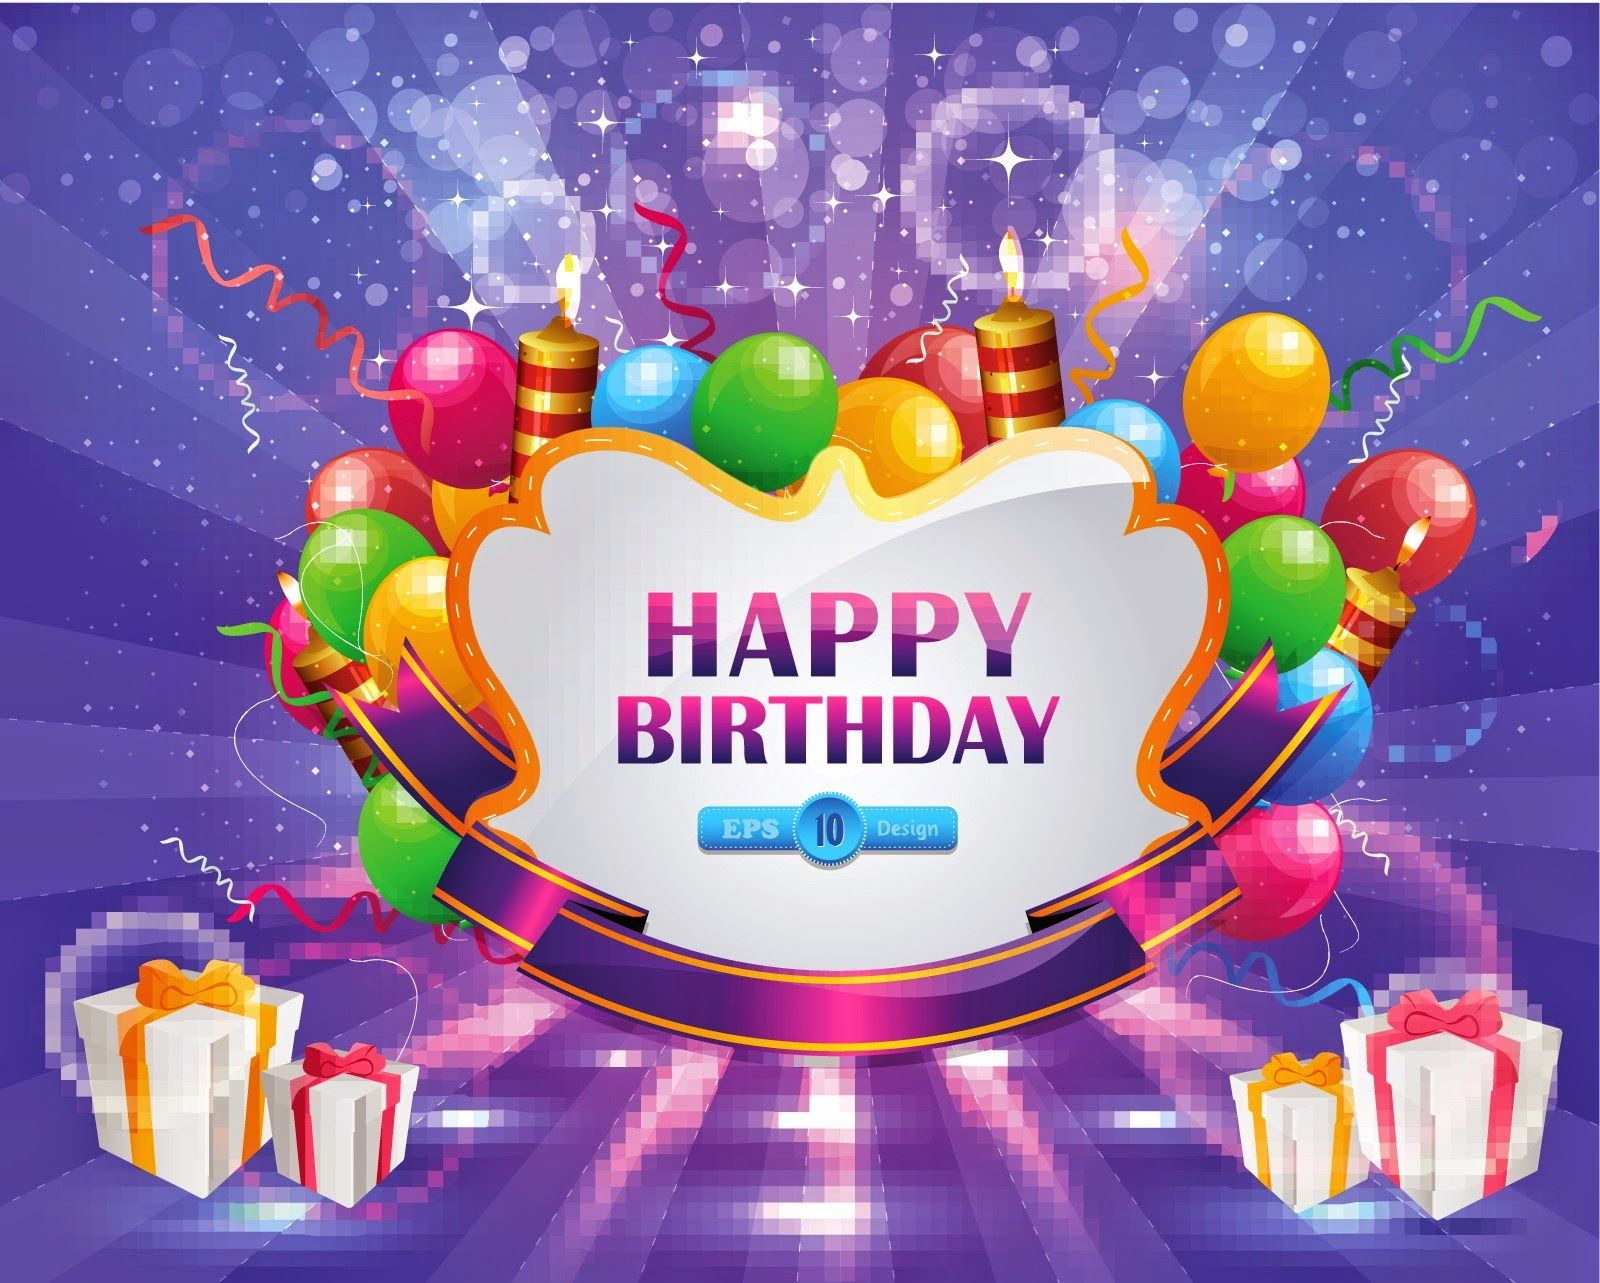 Happy birthday quotes pictures images free download sms wishes happy birthday quotes pictures images free download sms wishes poetry kristyandbryce Image collections